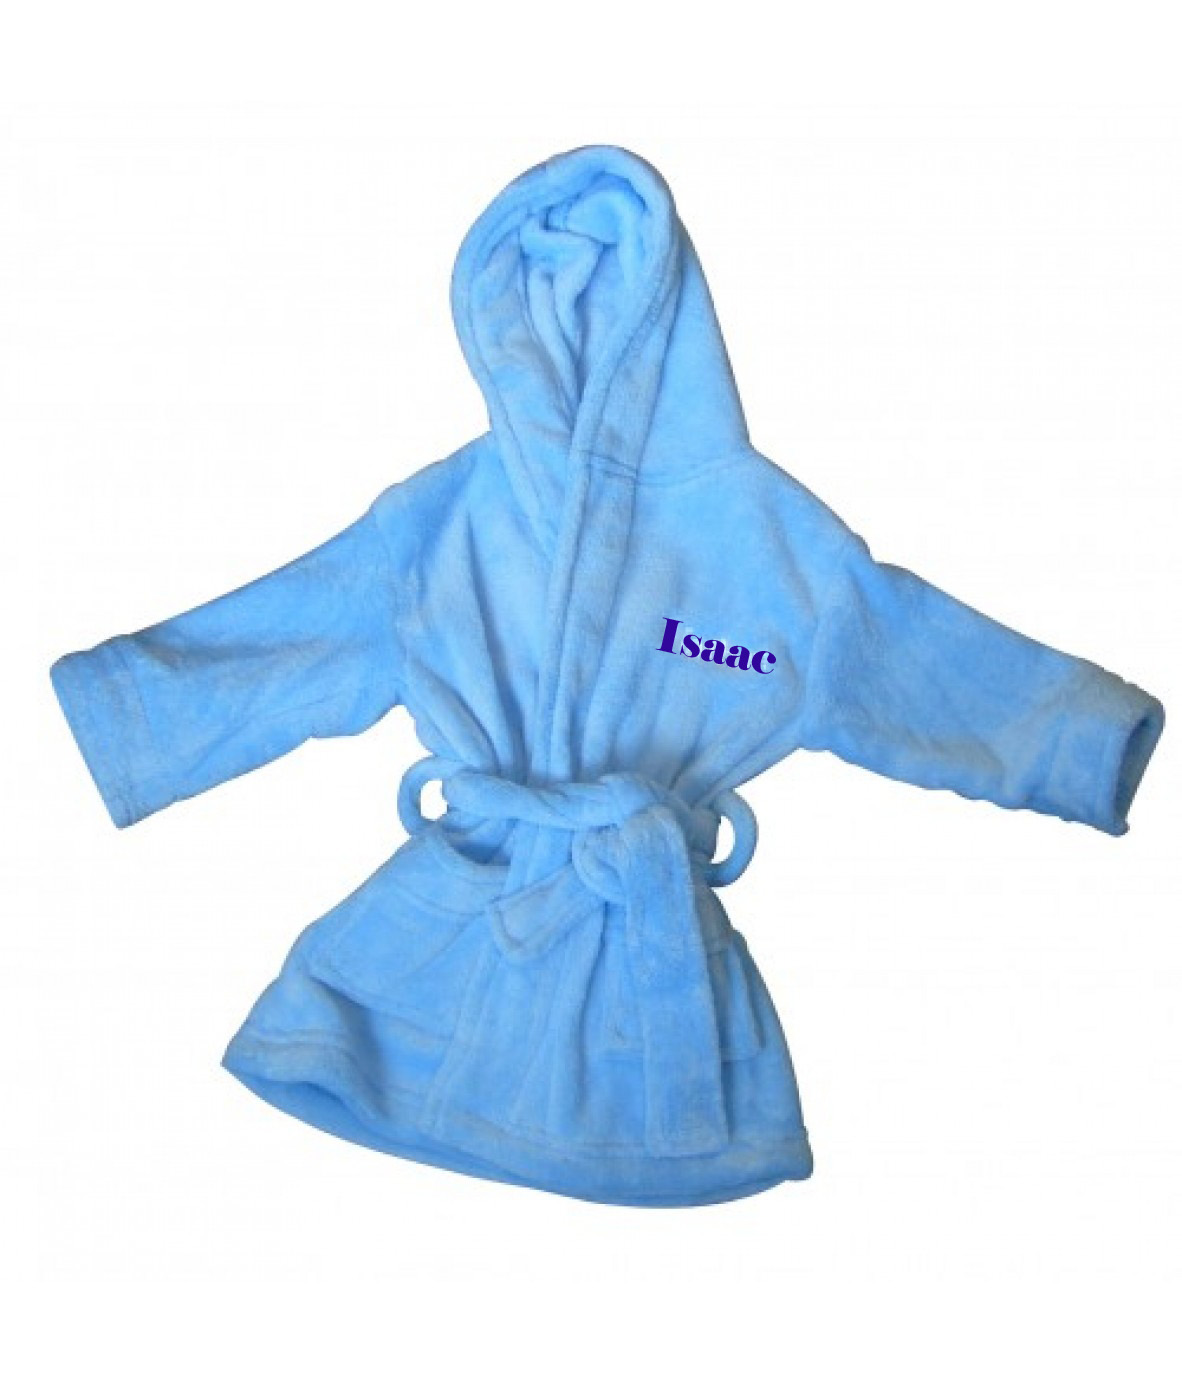 PERSONALISED BABY DRESSING GOWN ROBE - pale blue